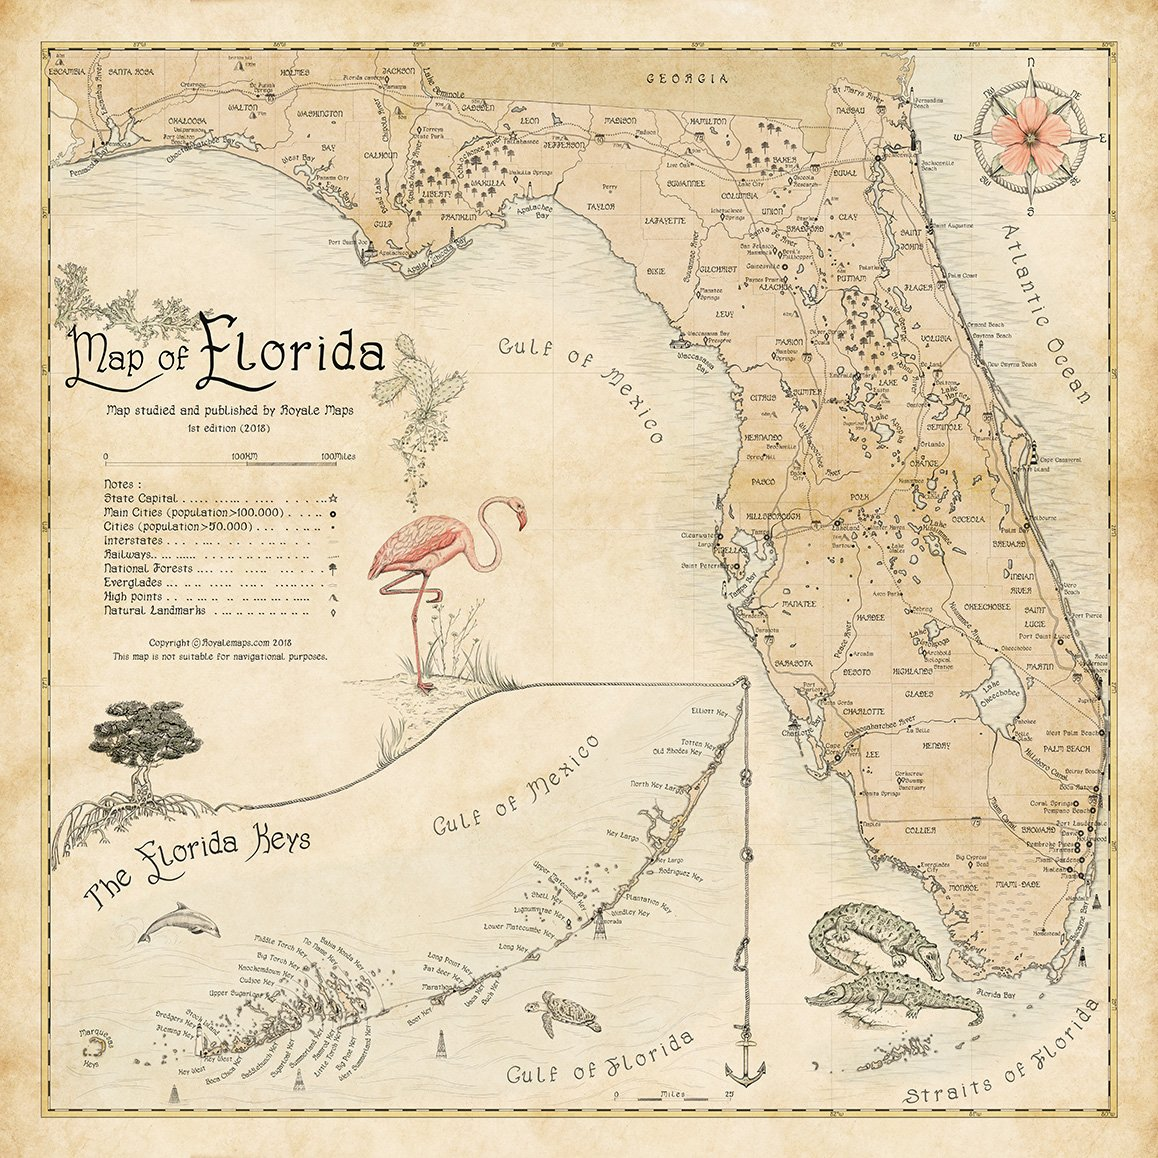 Florida State Map.Map Of Florida To Flamingo Or No Flamingo Royale Maps